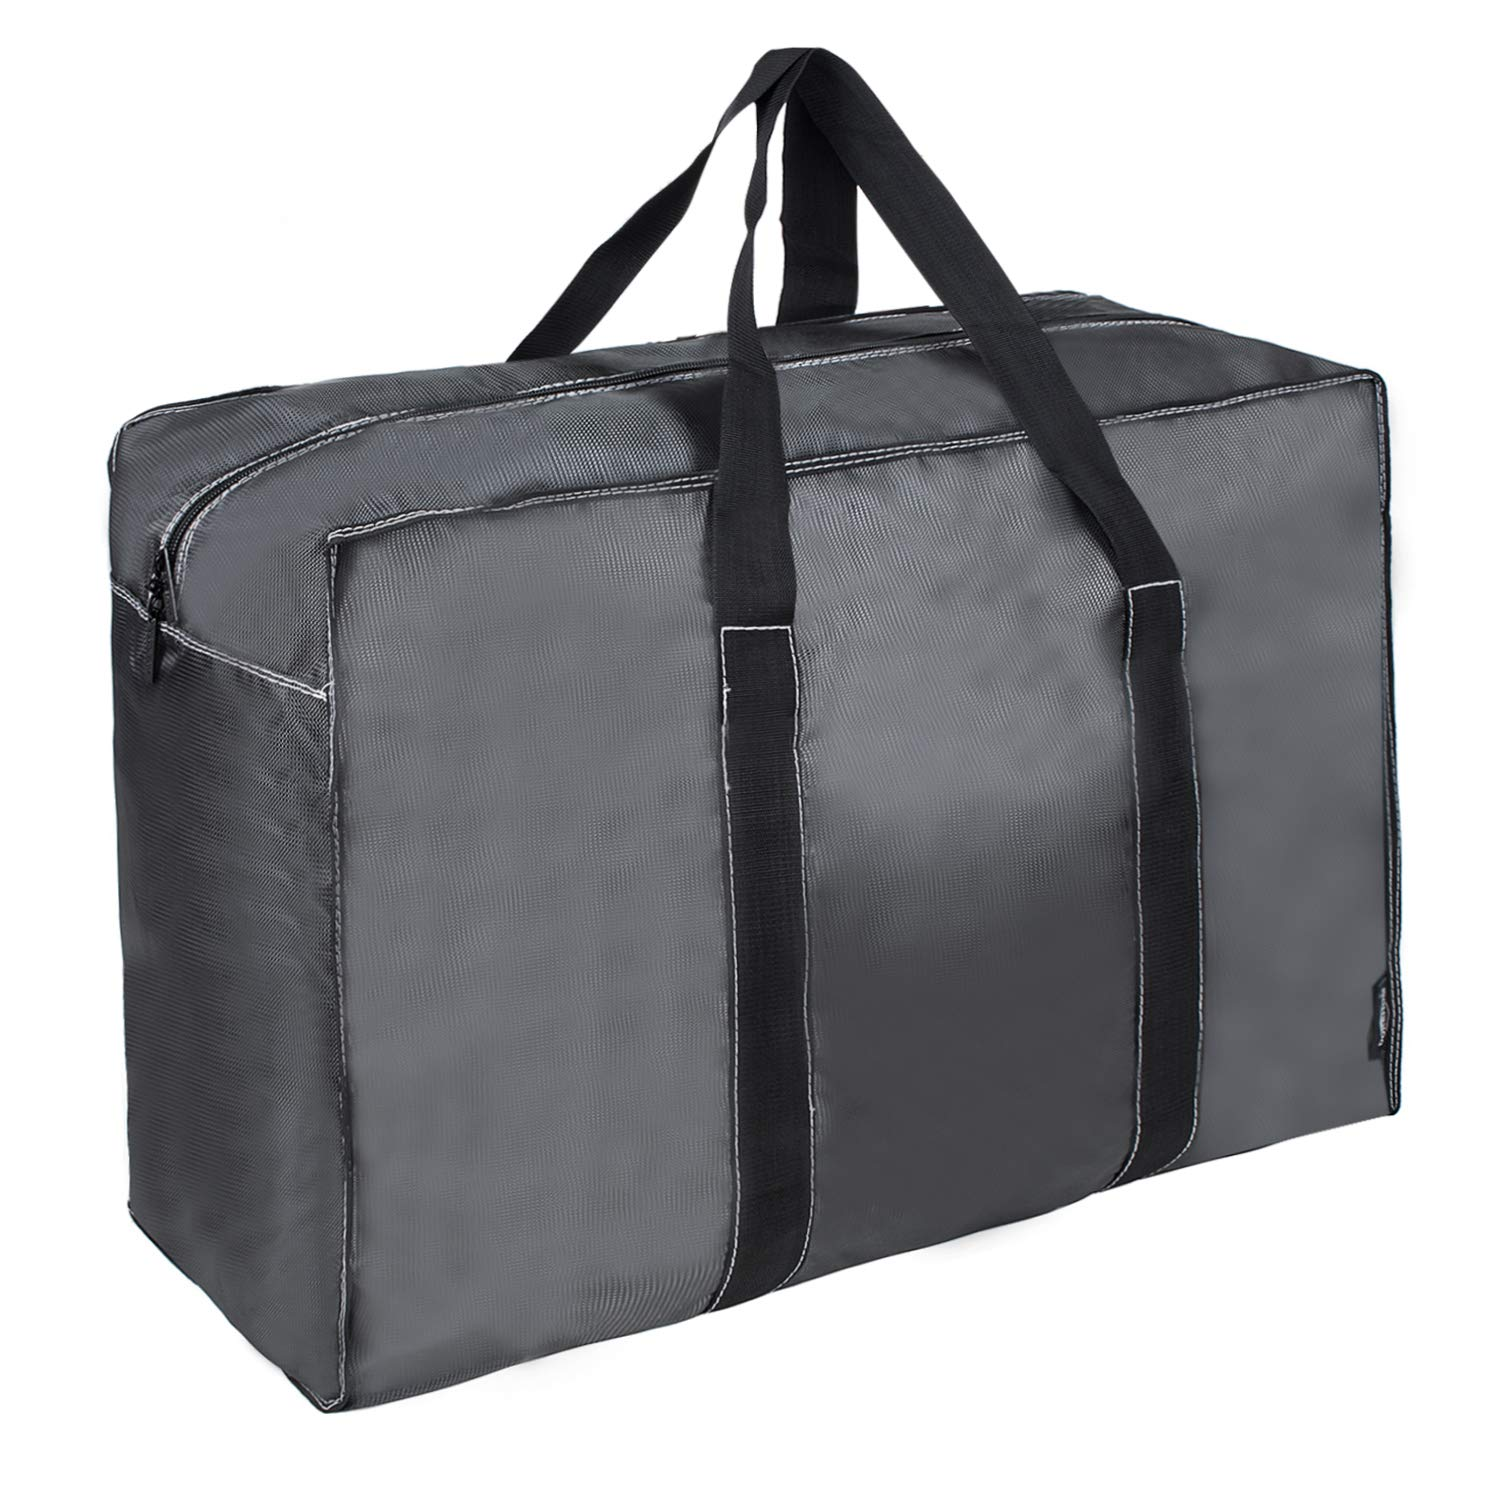 DOKEHOM DKA1015DGXL 130L Thickened X-Large Storage Bag (4 Colors), Fabric Clothes Bag, Ultra Size Under Bed Storage, Moisture Proof (Dark Grey, XL)